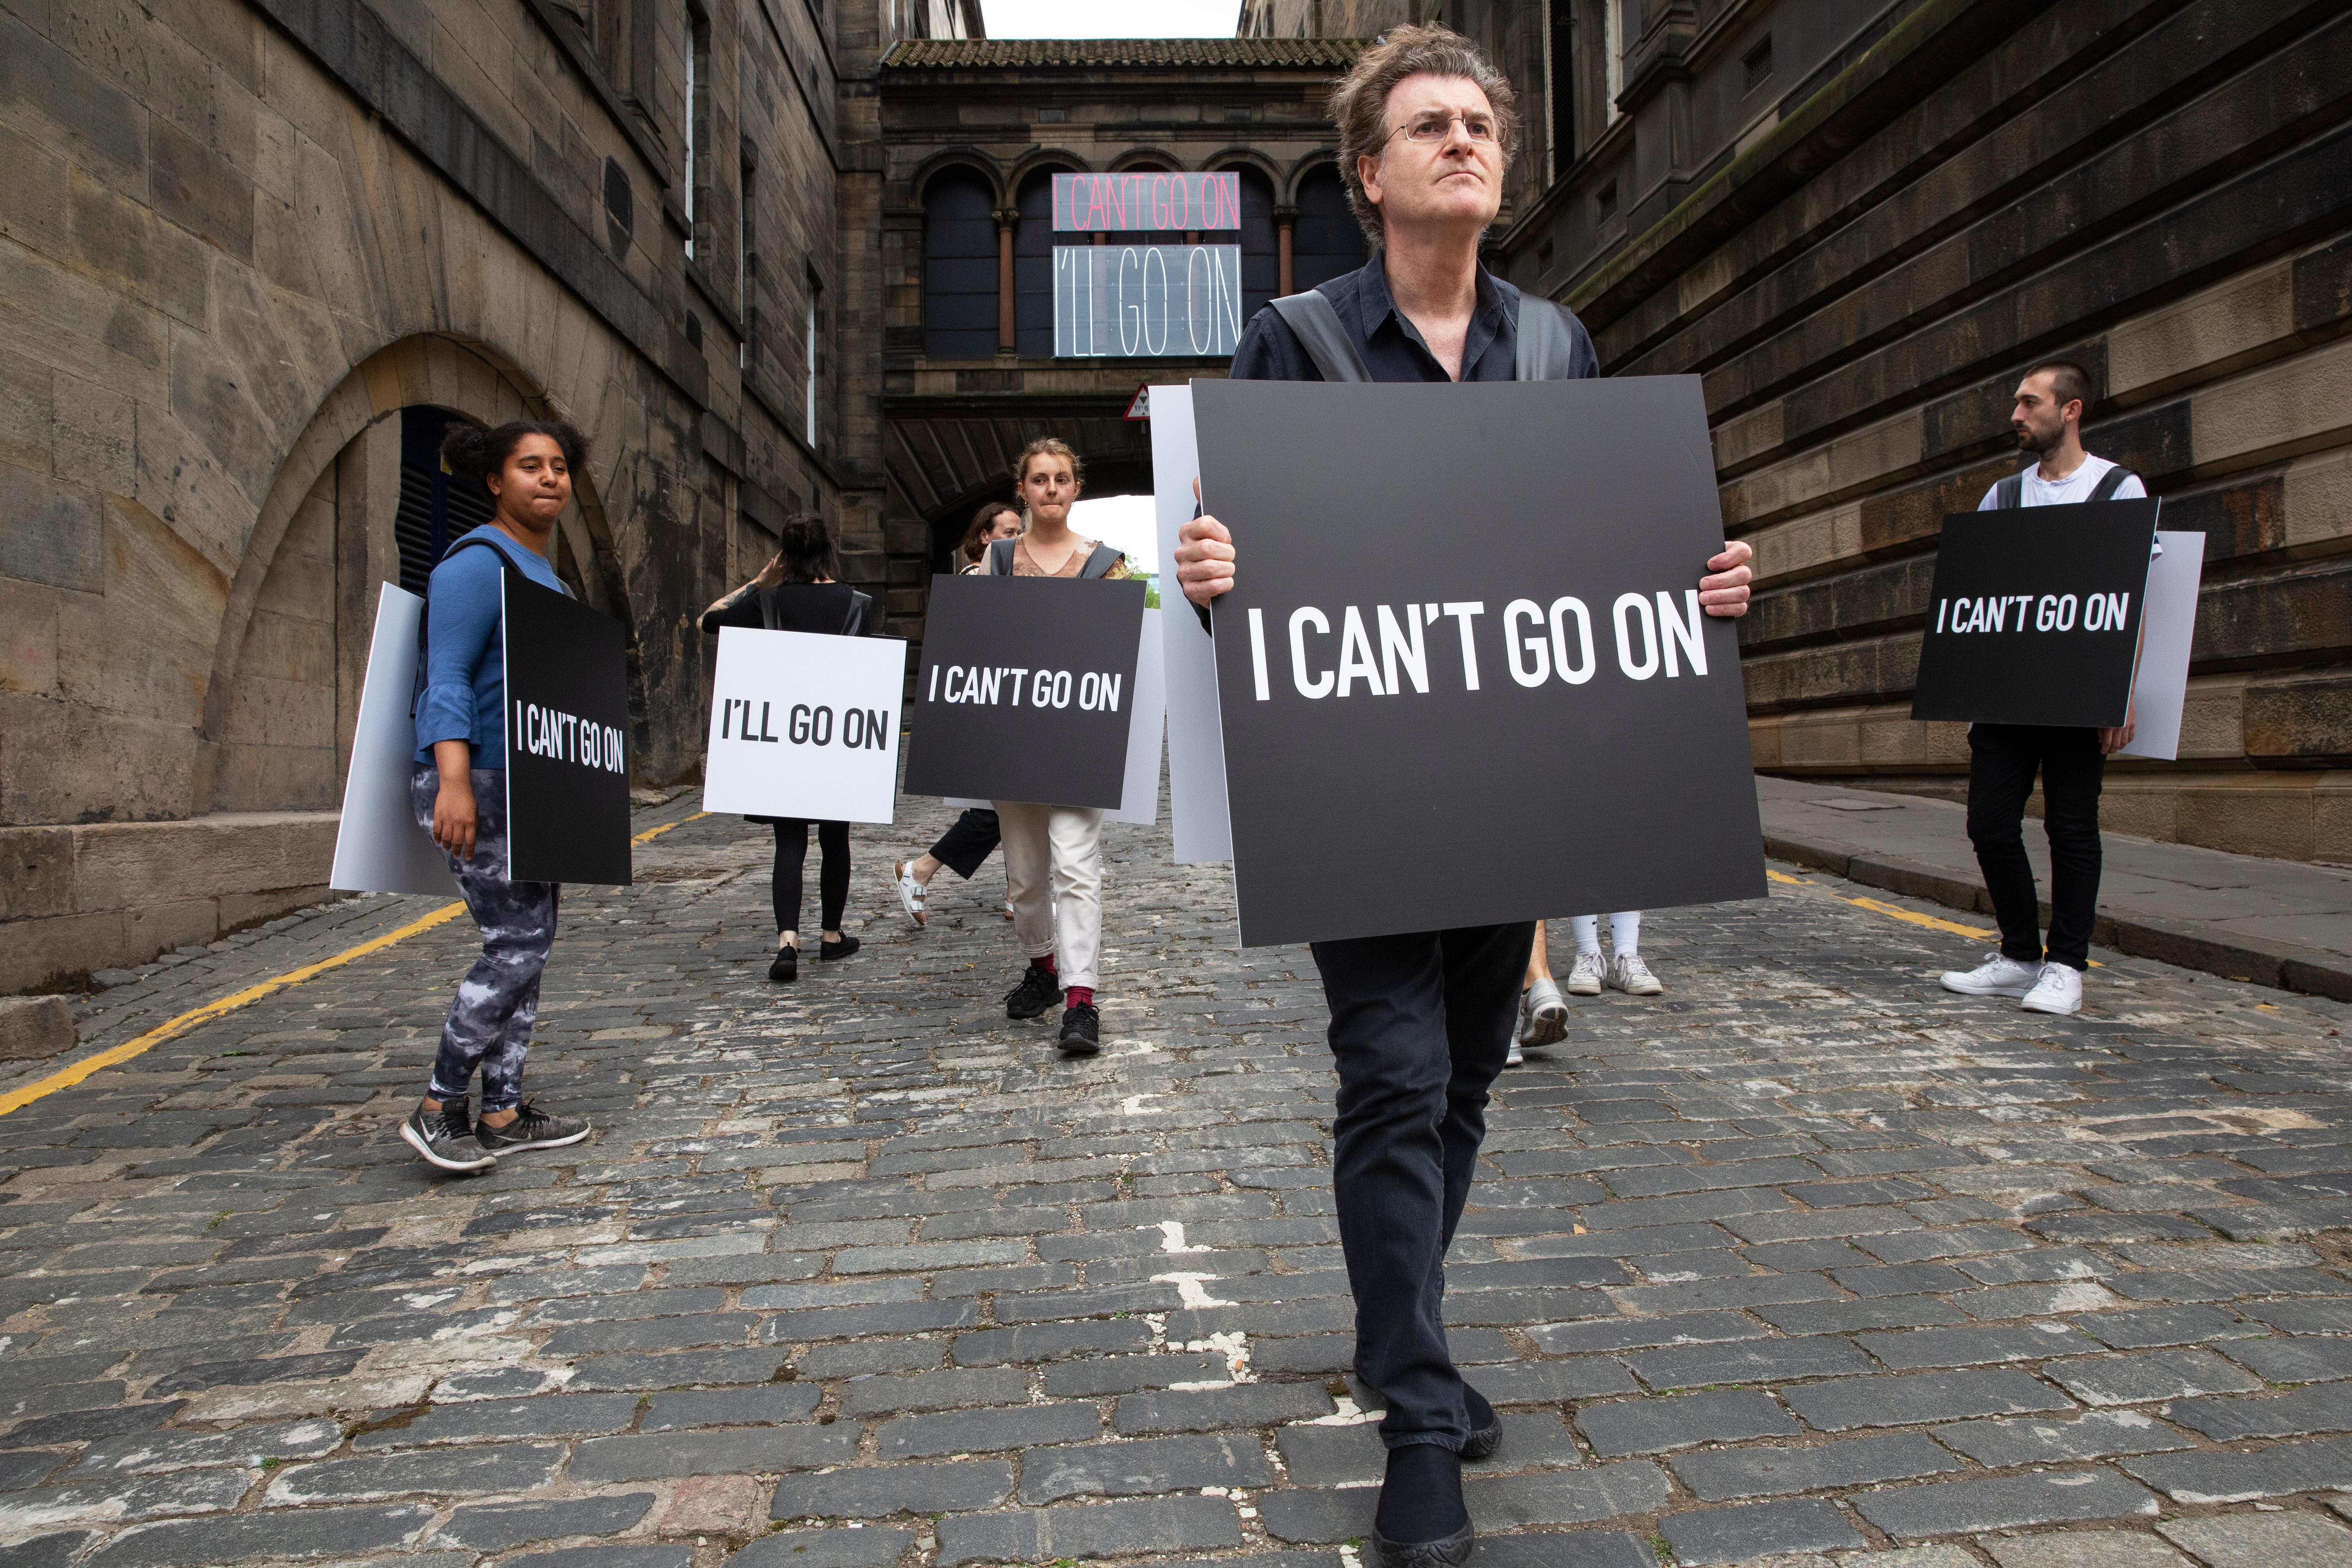 Art provocateur Alfredo Jaar: 'I want to change the world. I fail all the time'